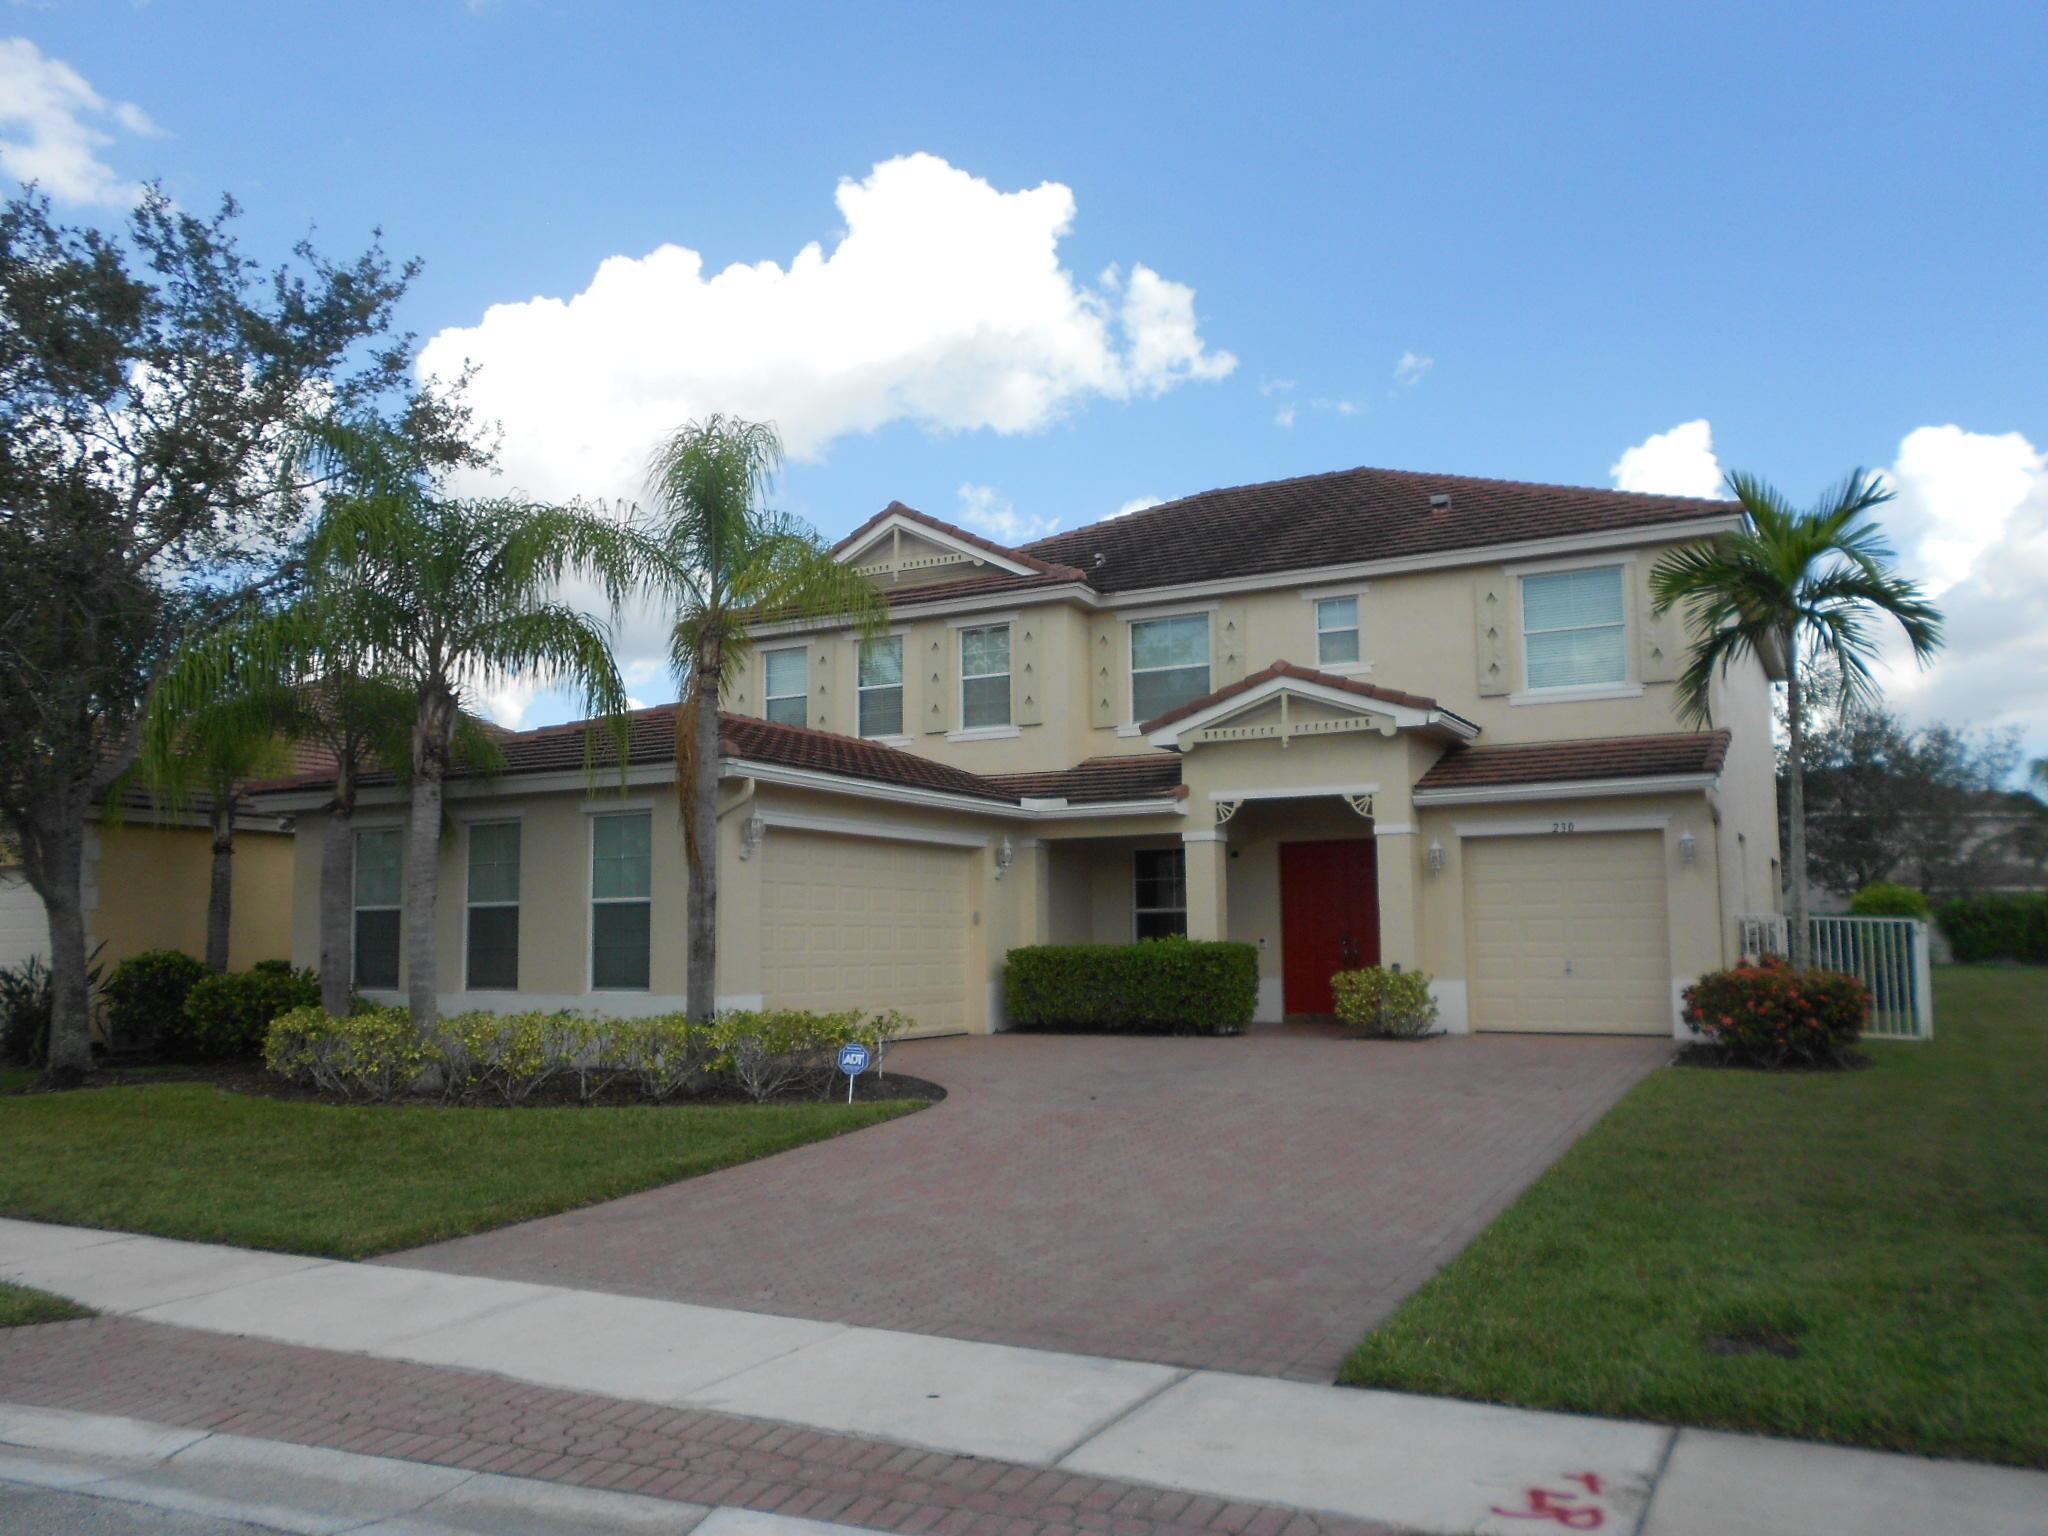 230 Palm Beach Plantation Blvd - Royal Palm Beach, Florida